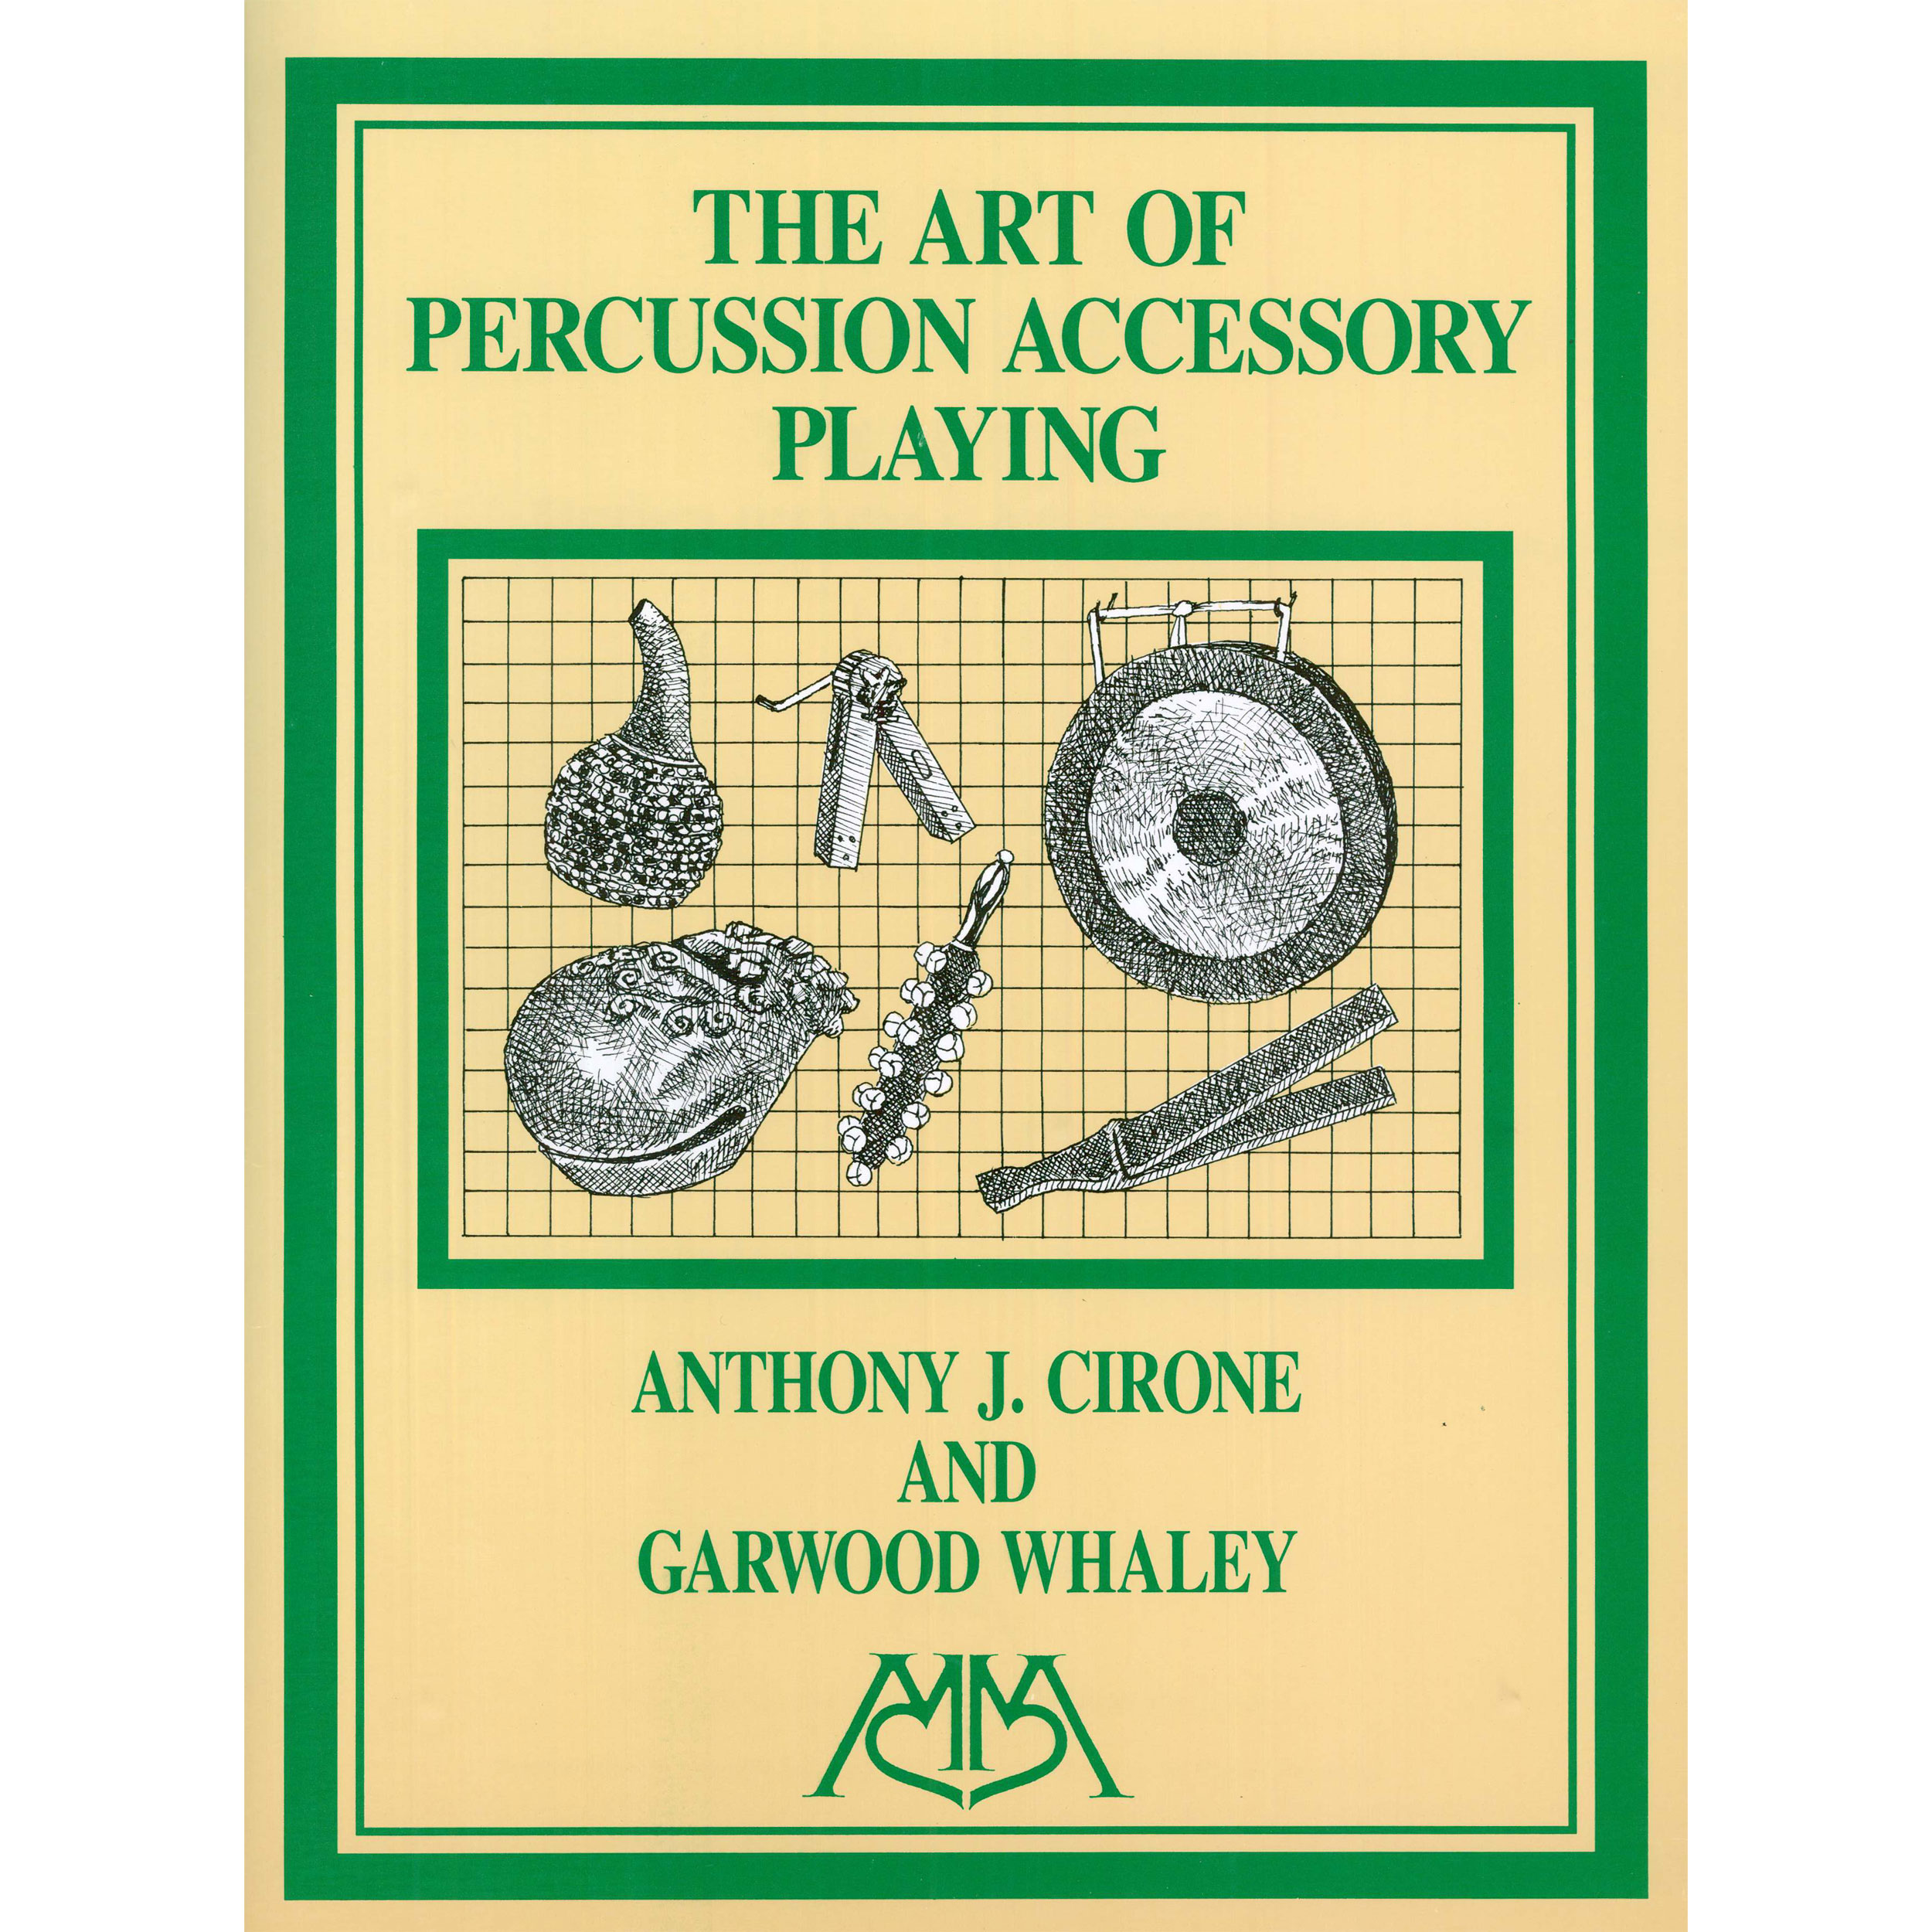 The Art of Percussion Accessory Playing by Anthony Cirone & Garwood Whaley